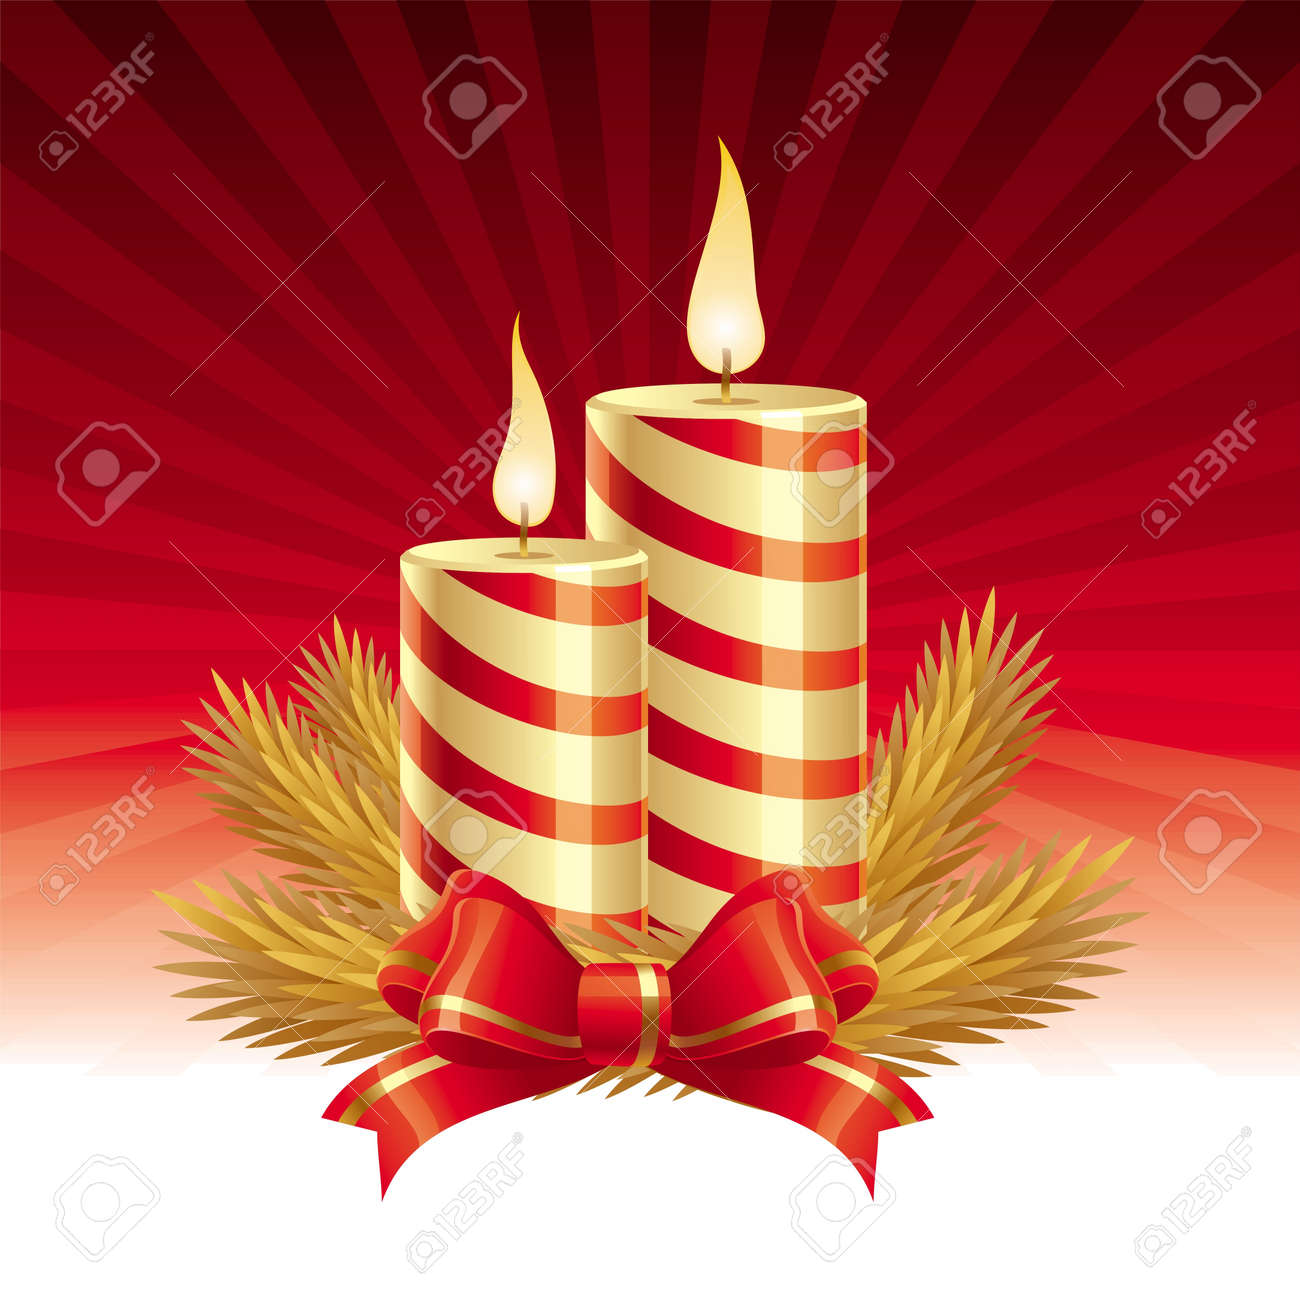 Two christmas candles - vector illustration Stock Vector - 9934960